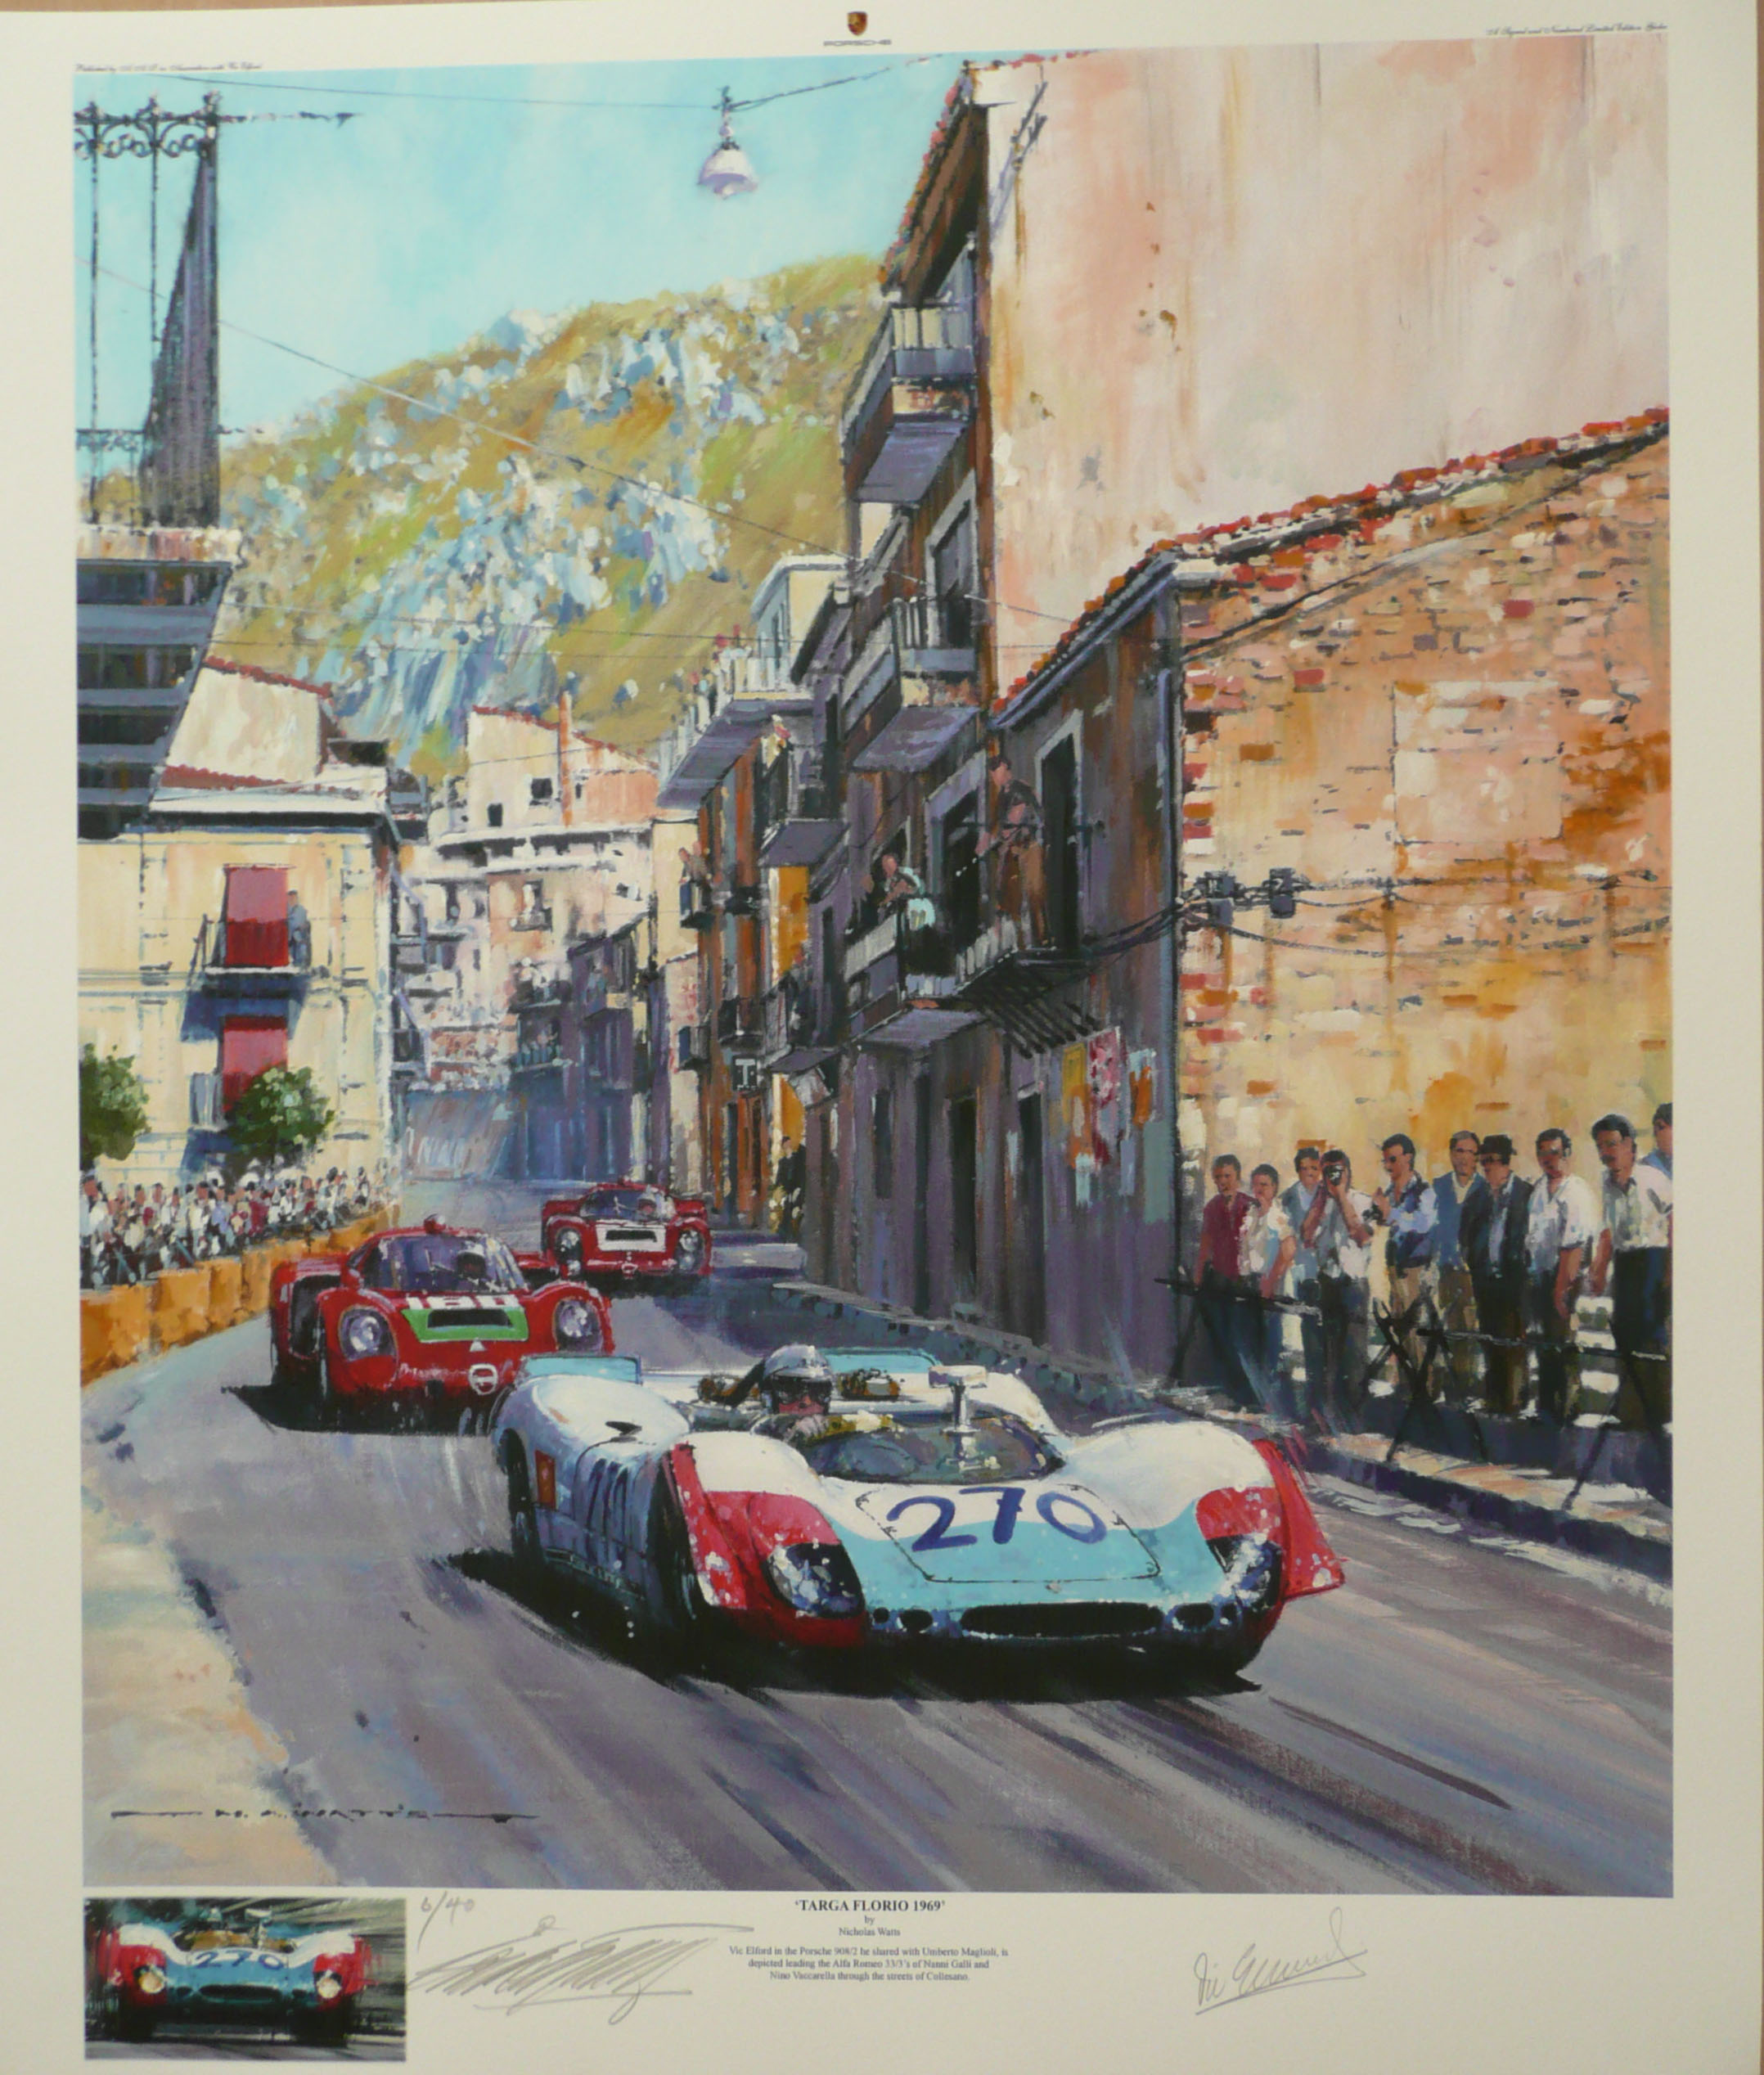 Targa Florio 1969 - Porsche 908/2 Nicholas Watts giclee signed by Artist &  Vic Elford - Cut signatures of Nino Vaccarella & Nanni Galli are available